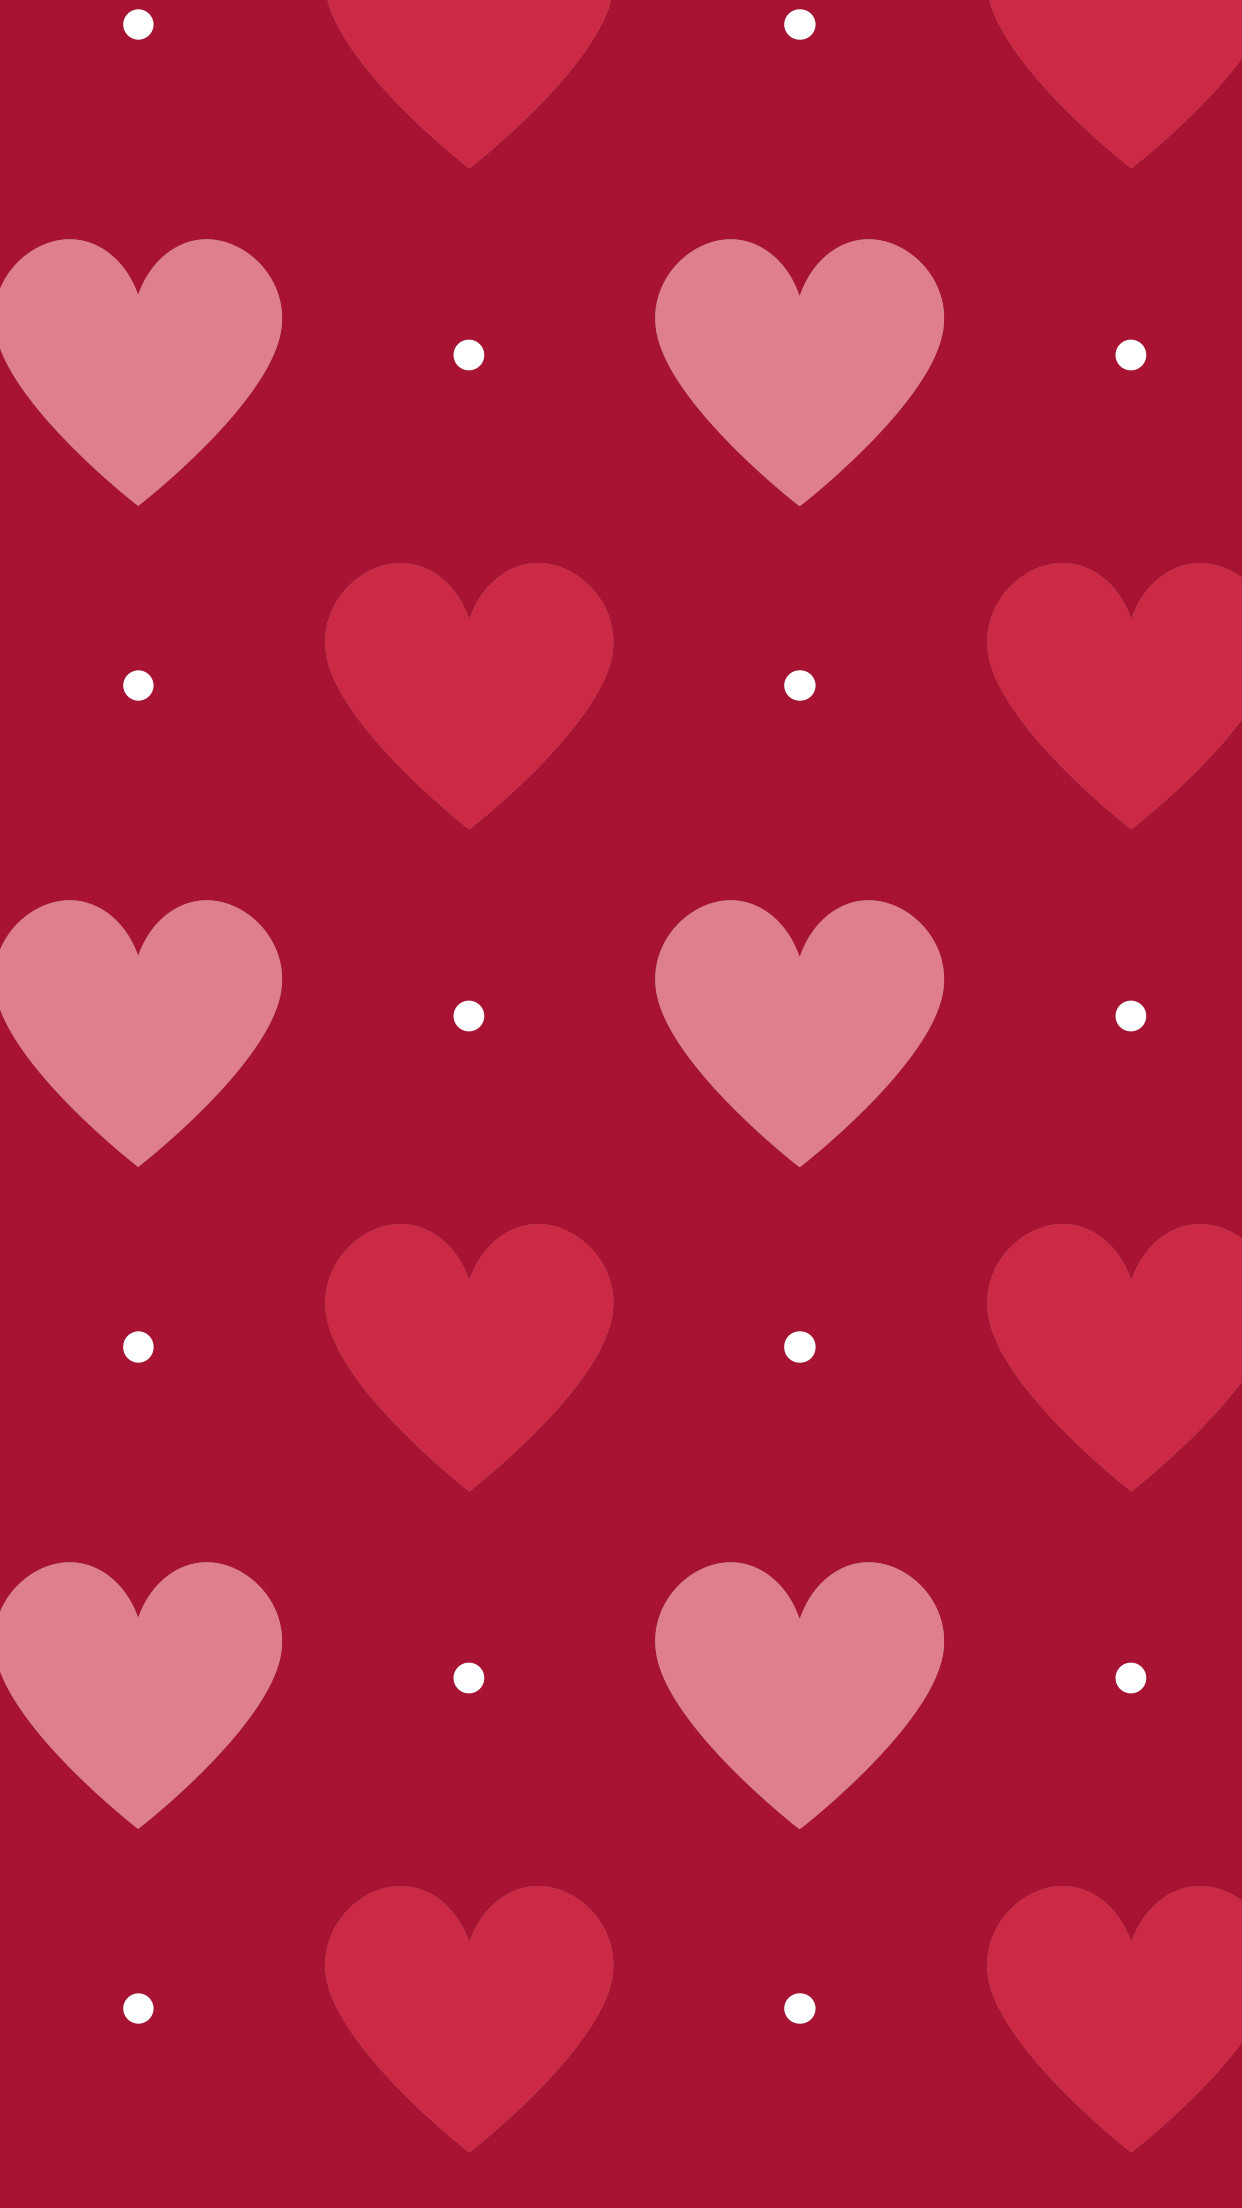 Colorful Hearts Wallpaper (66+ images)